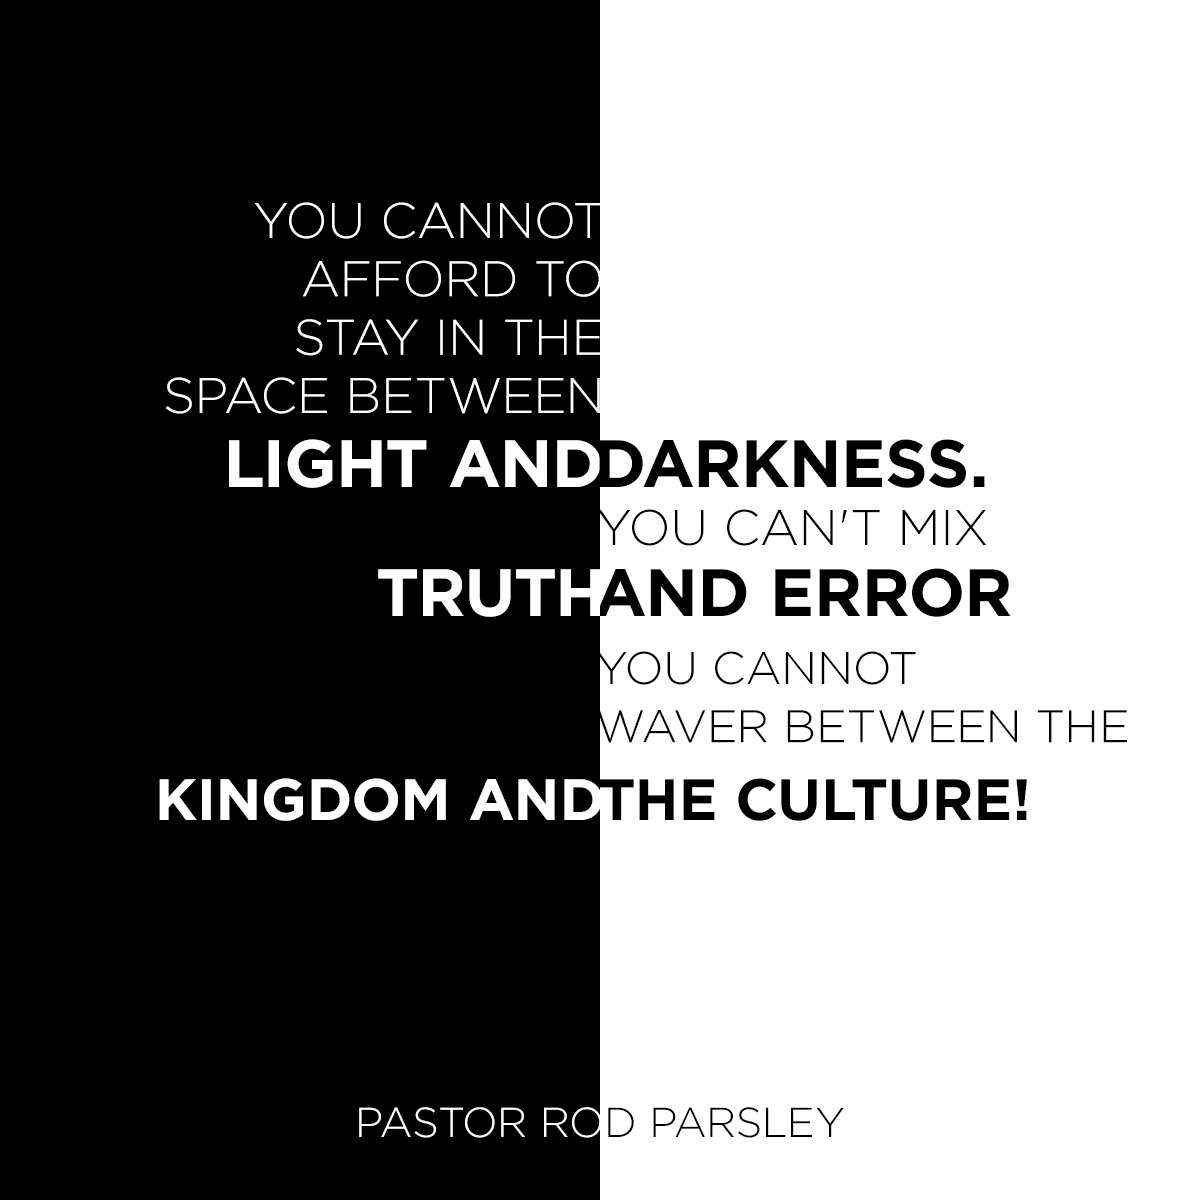 """You cannot afford to stay in the space between light and darkness. You can't mix truth and error. You cannot waver between the Kingdom and the culture!"" – Pastor Rod Parsley"